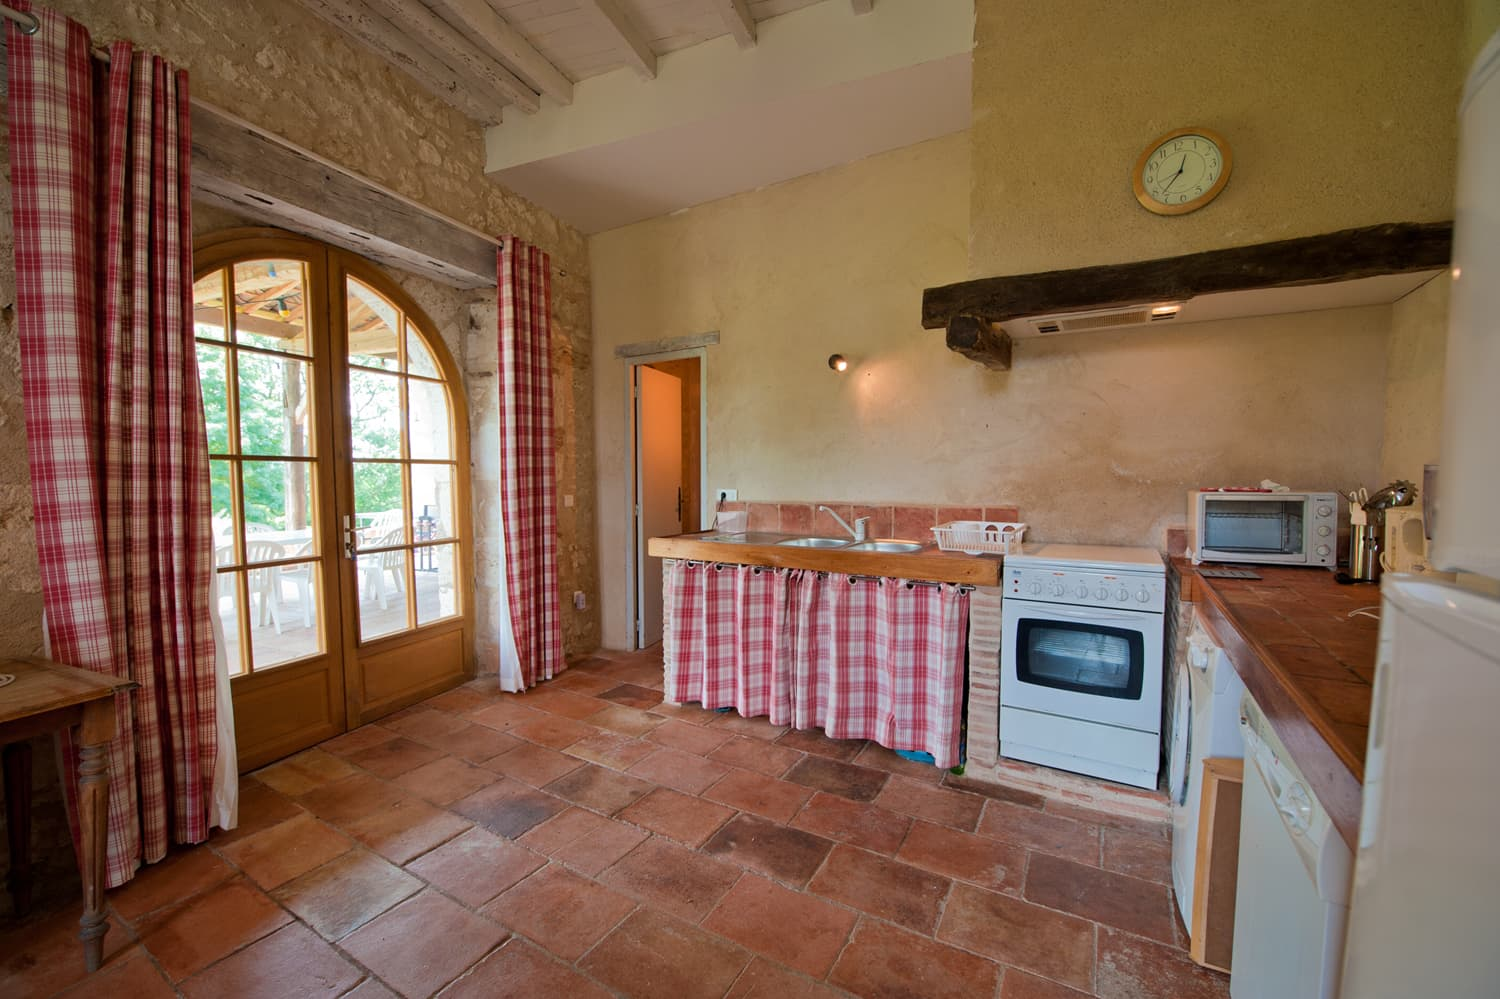 Kitchen in South West France rental accommodation